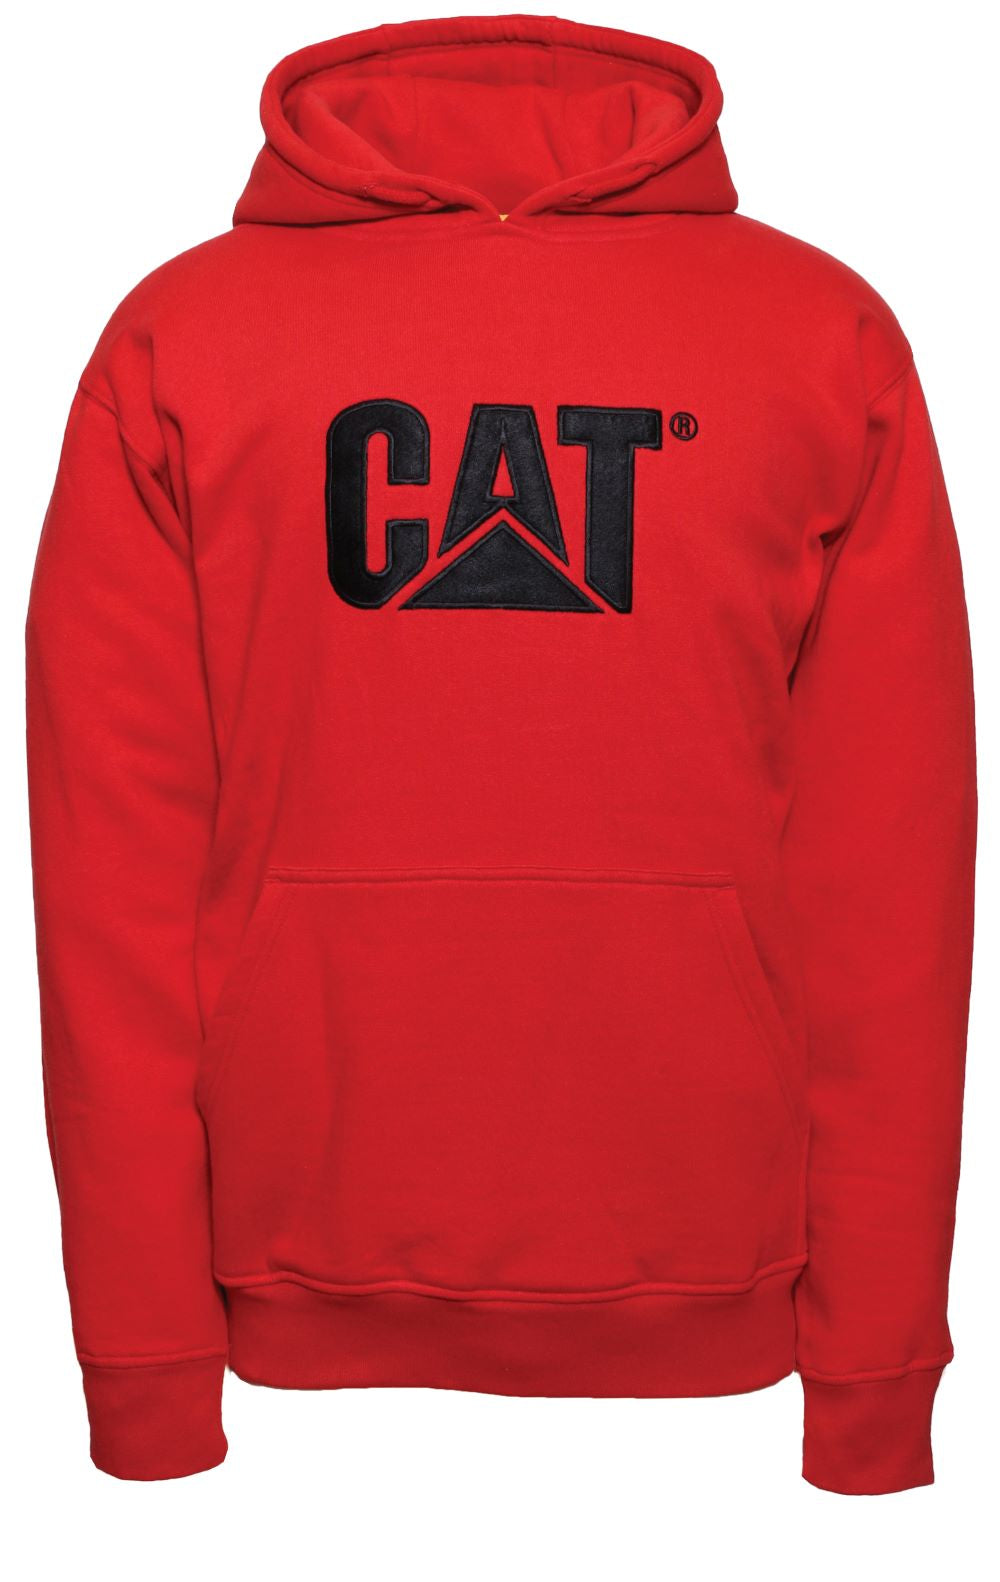 'Caterpillar' Men's Trademark Hooded Sweatshirt - Red Tide